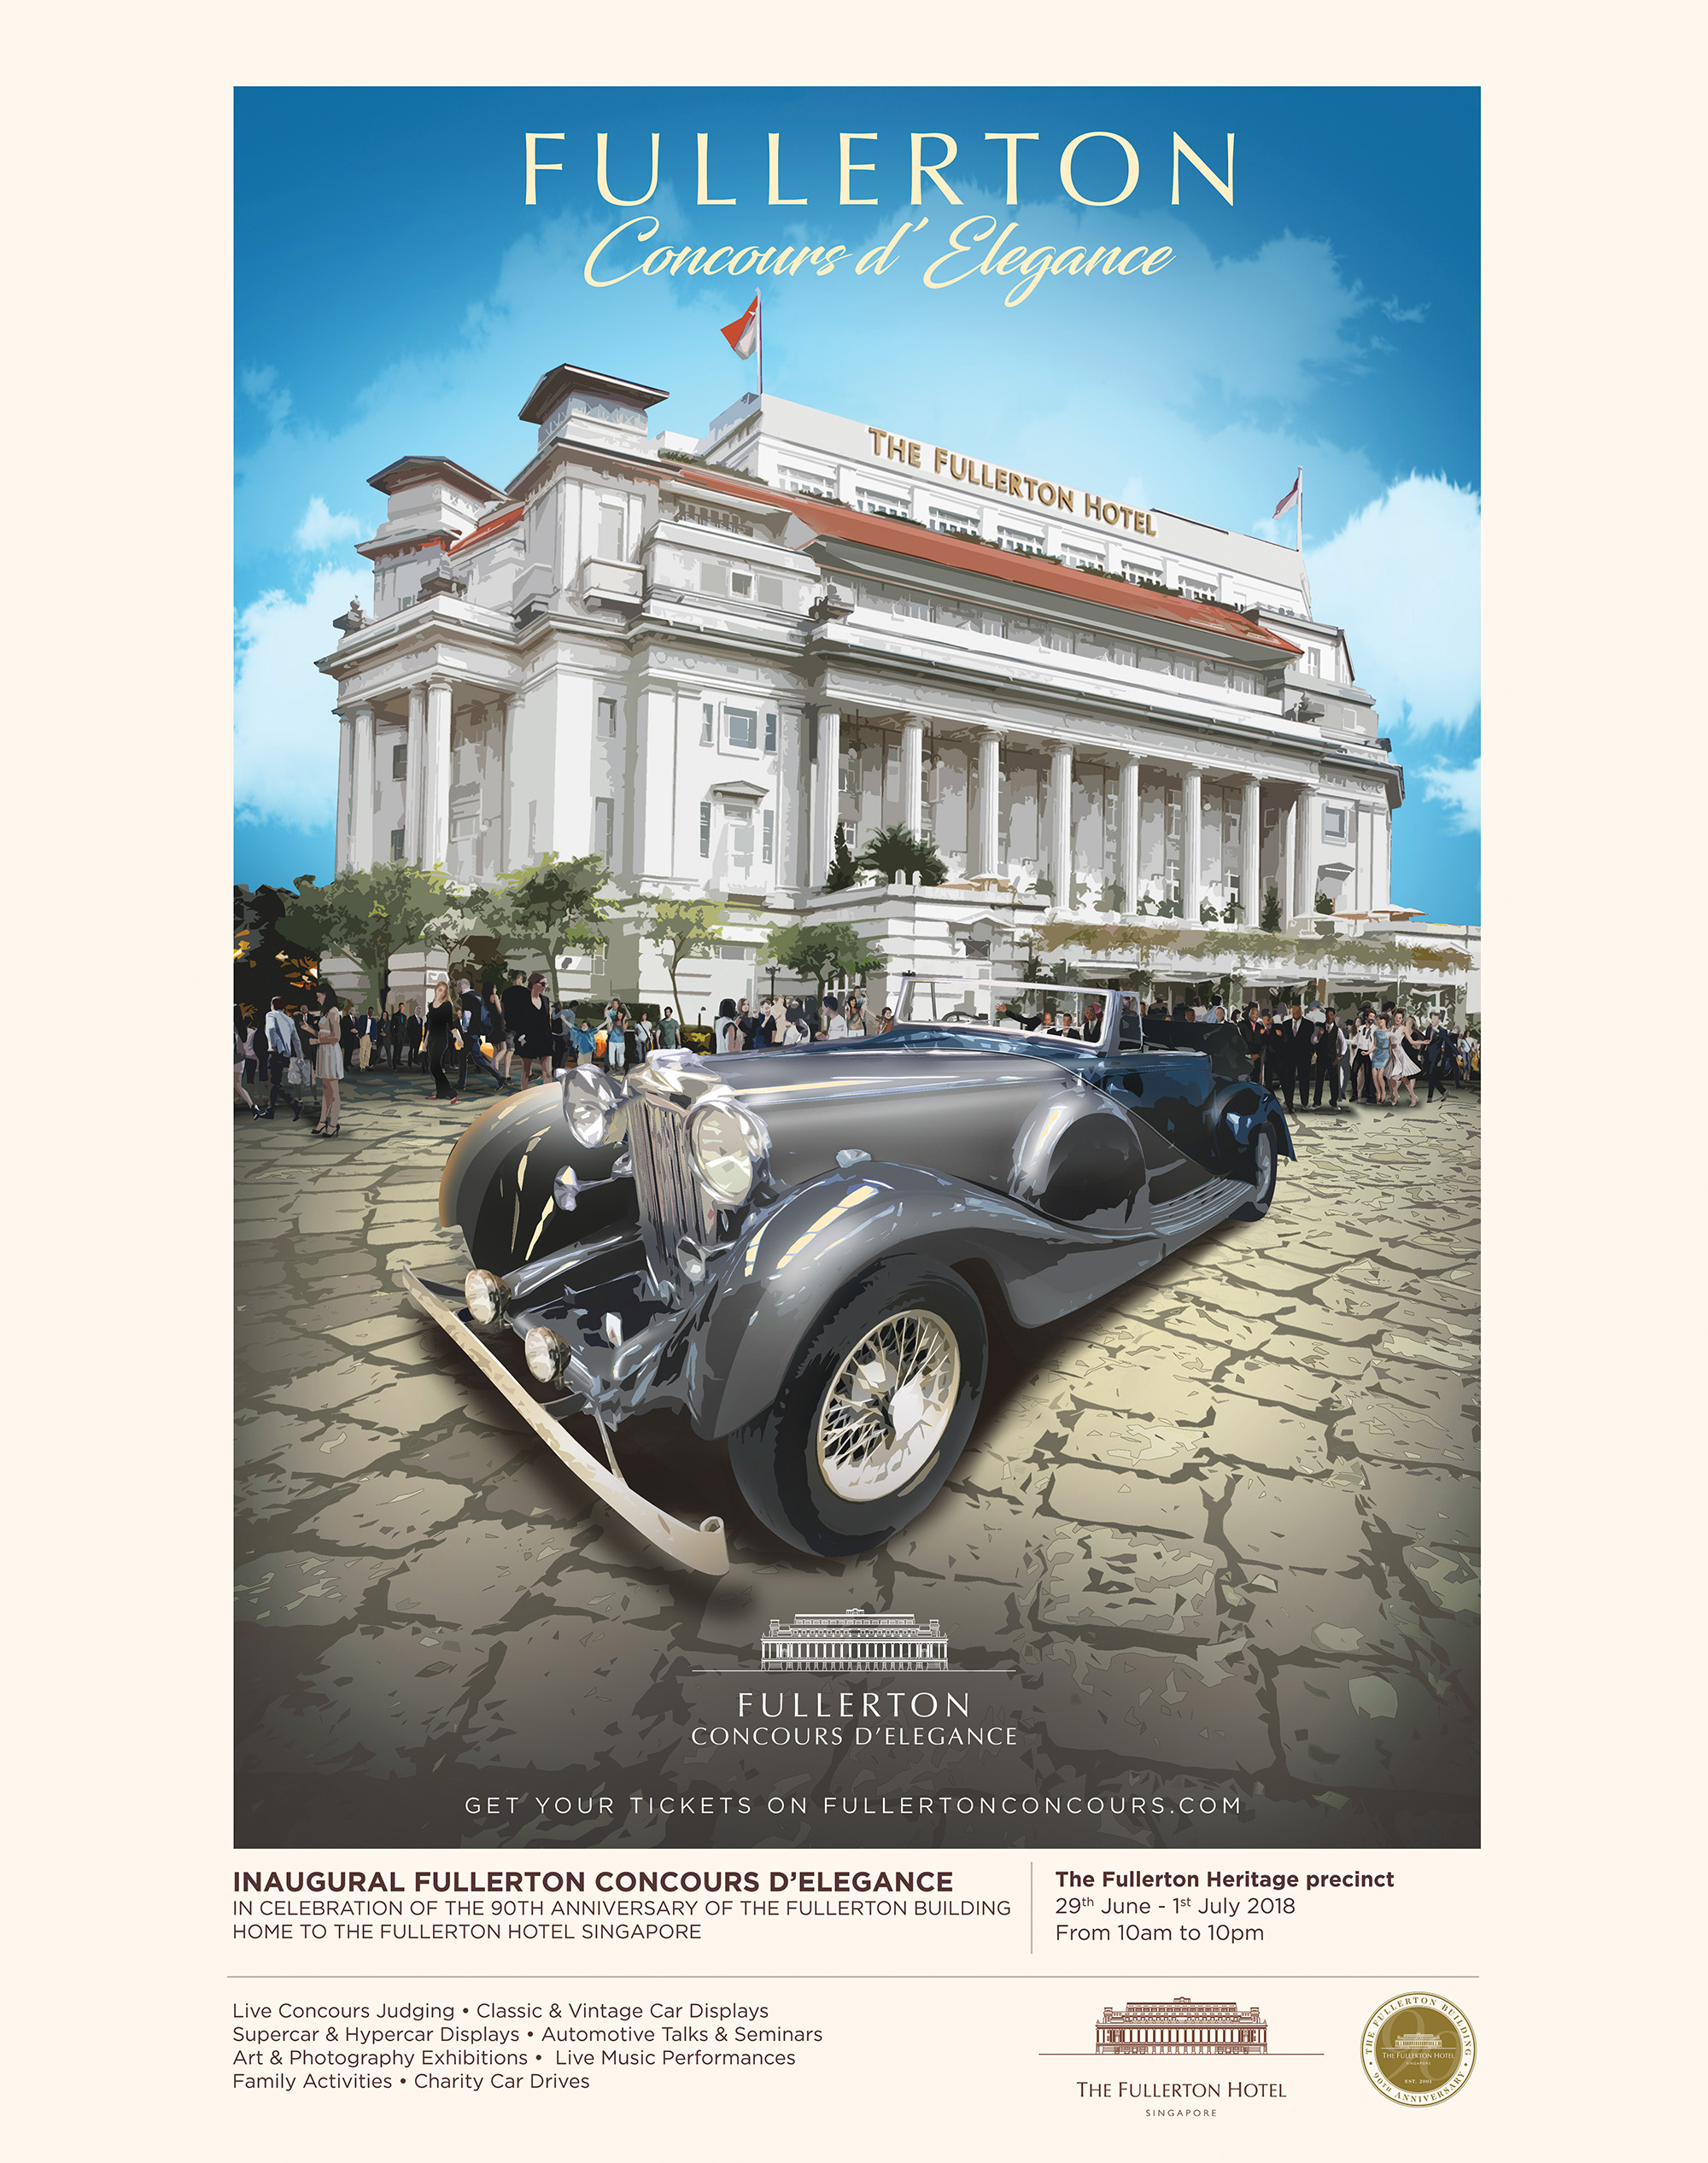 The 2018 Fullerton Concours D Elegance 29th June 1st July 2018